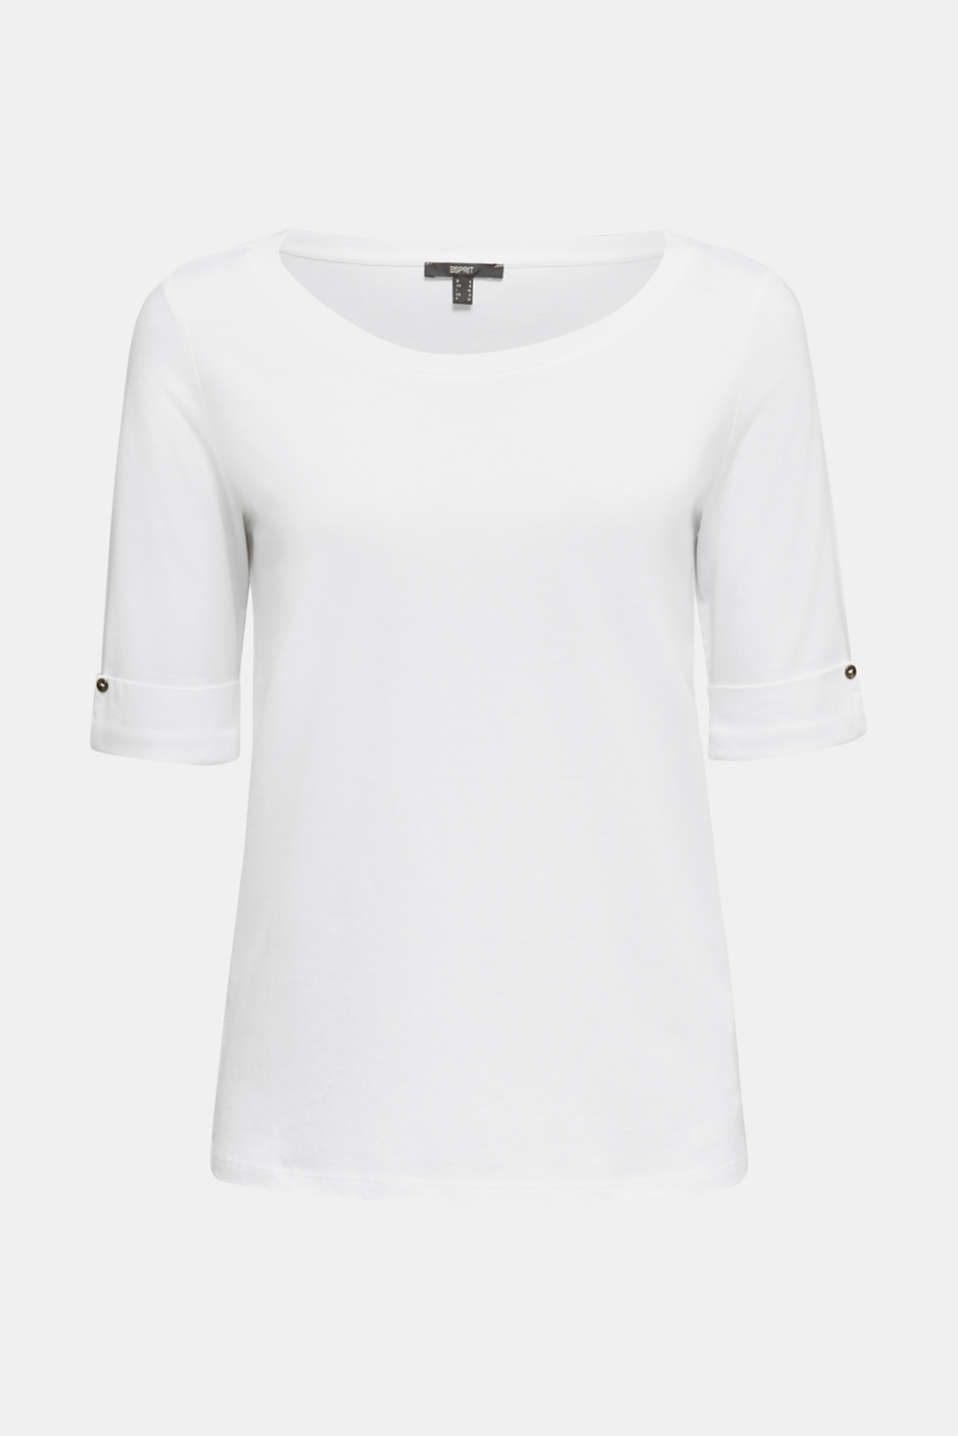 T-shirt with turn-up sleeves, WHITE, detail image number 6